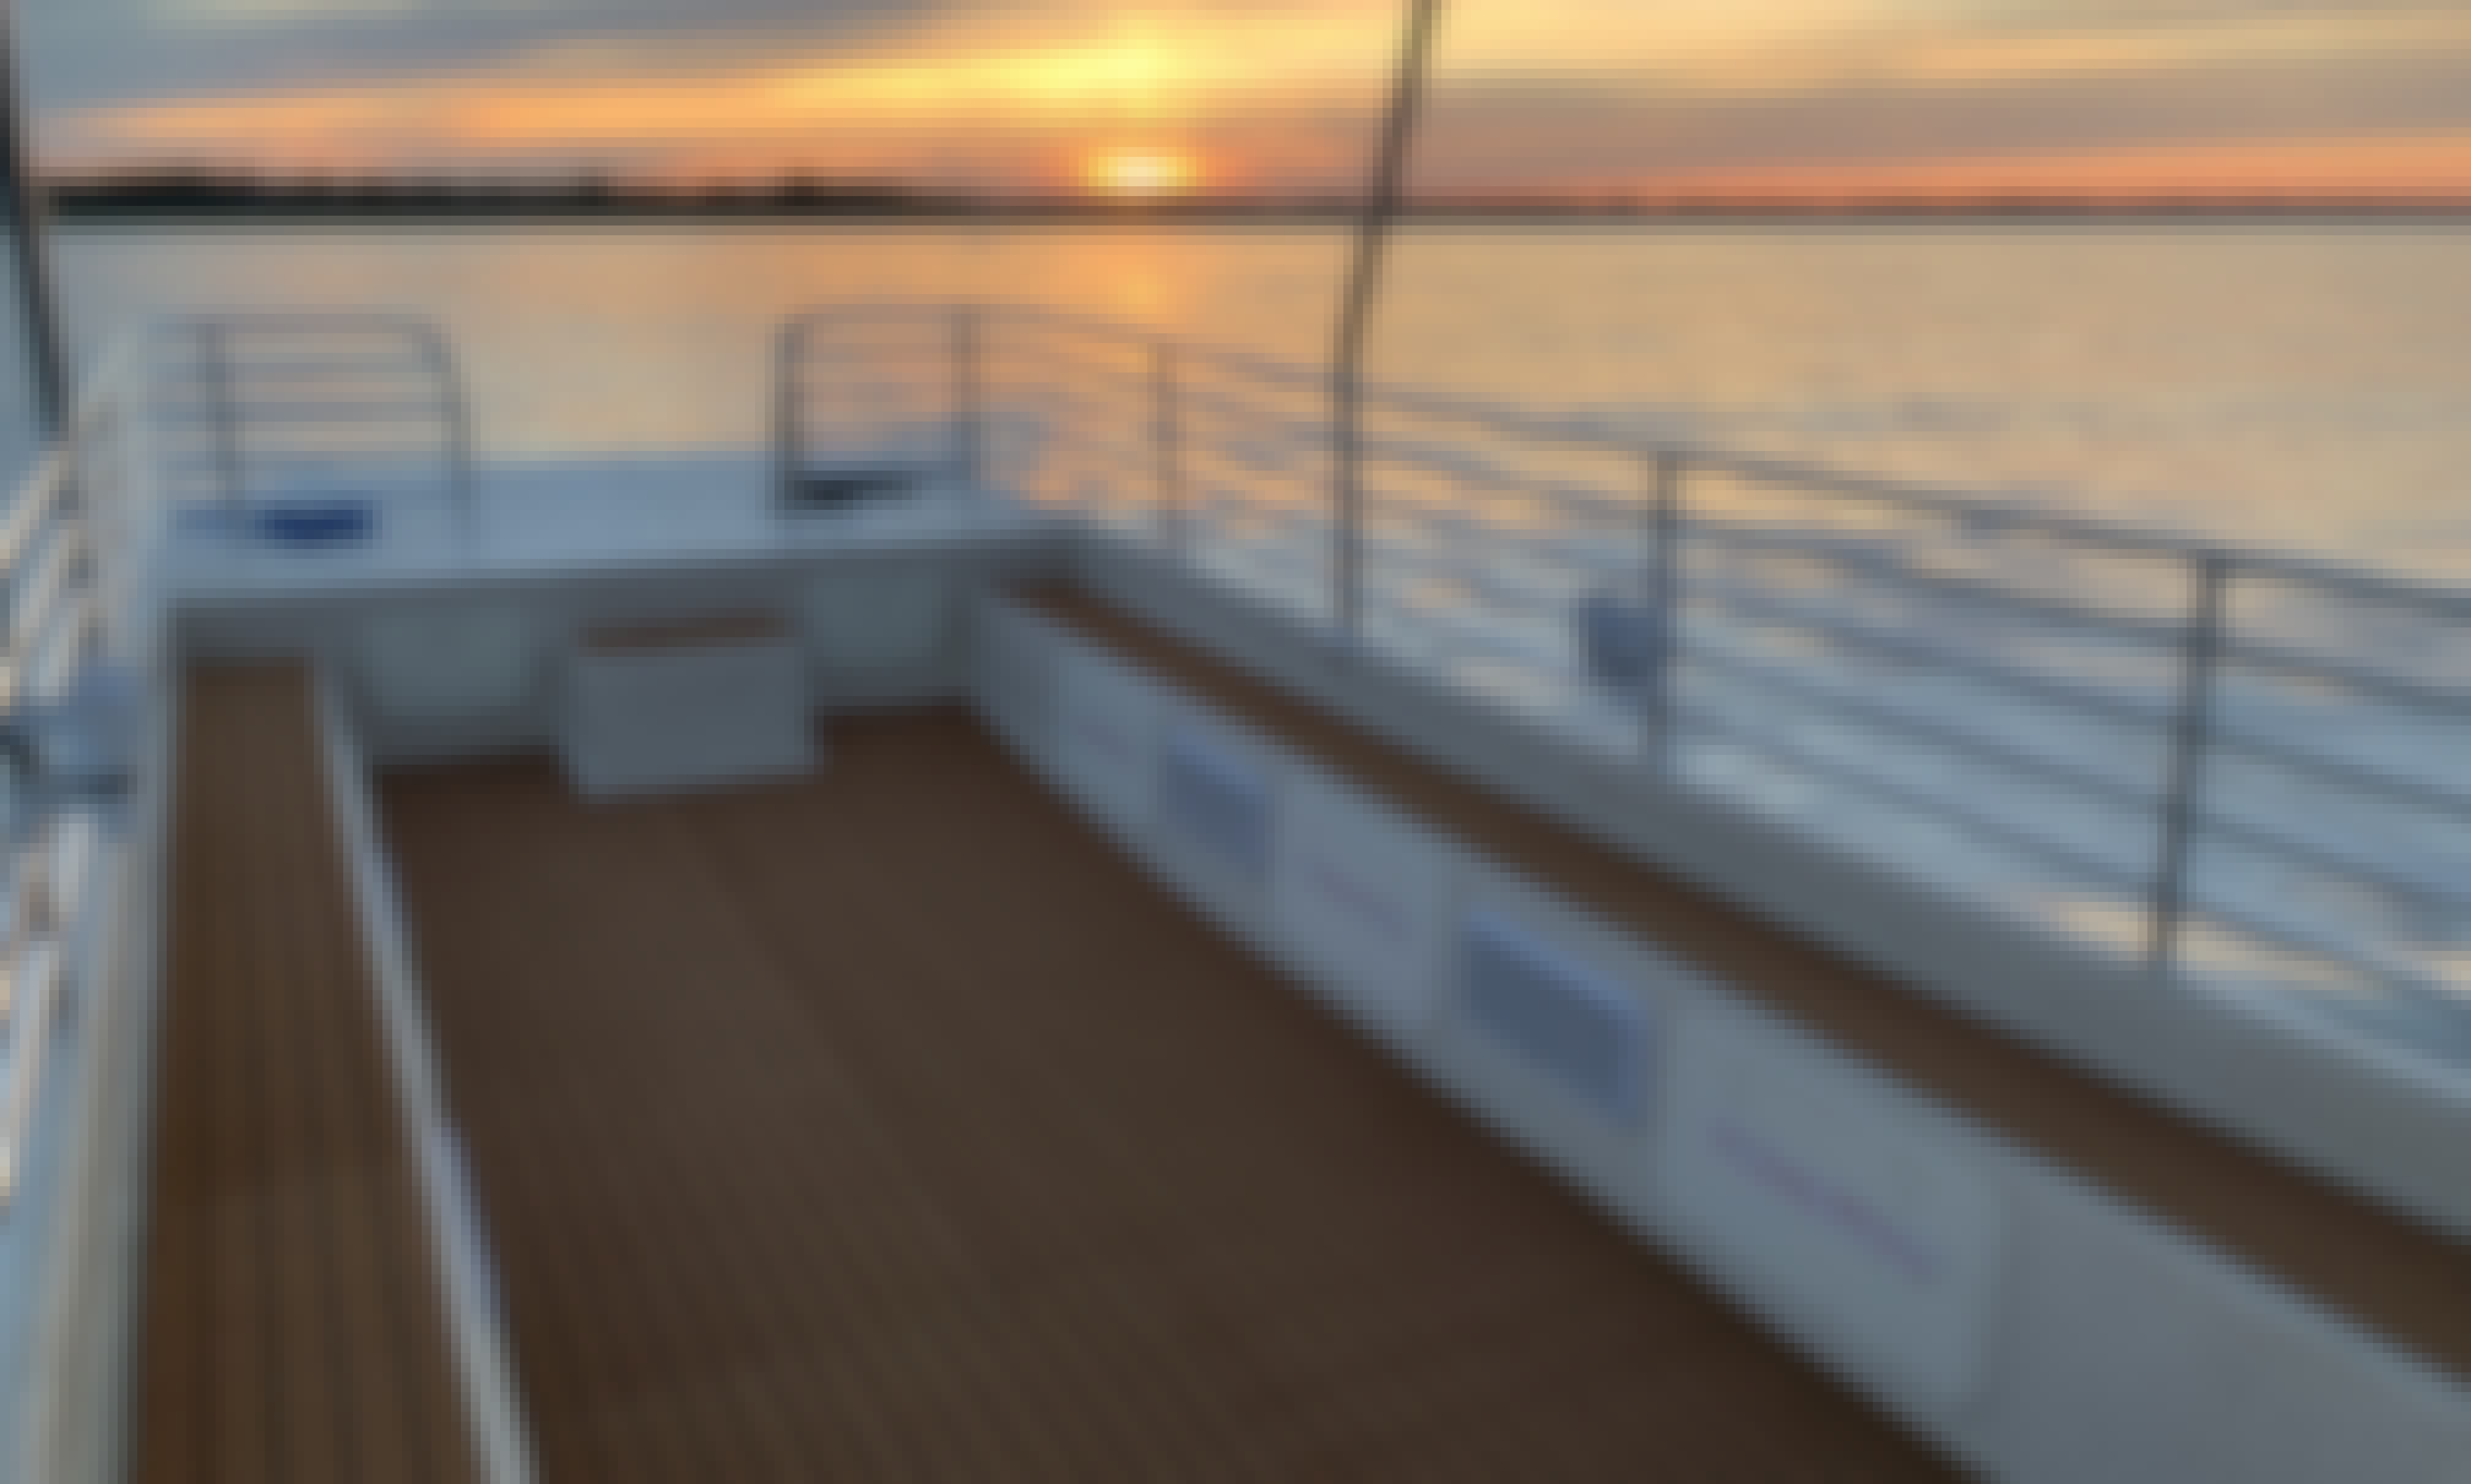 Private Charleston Sunset Boat Tour for up to 15 guests!